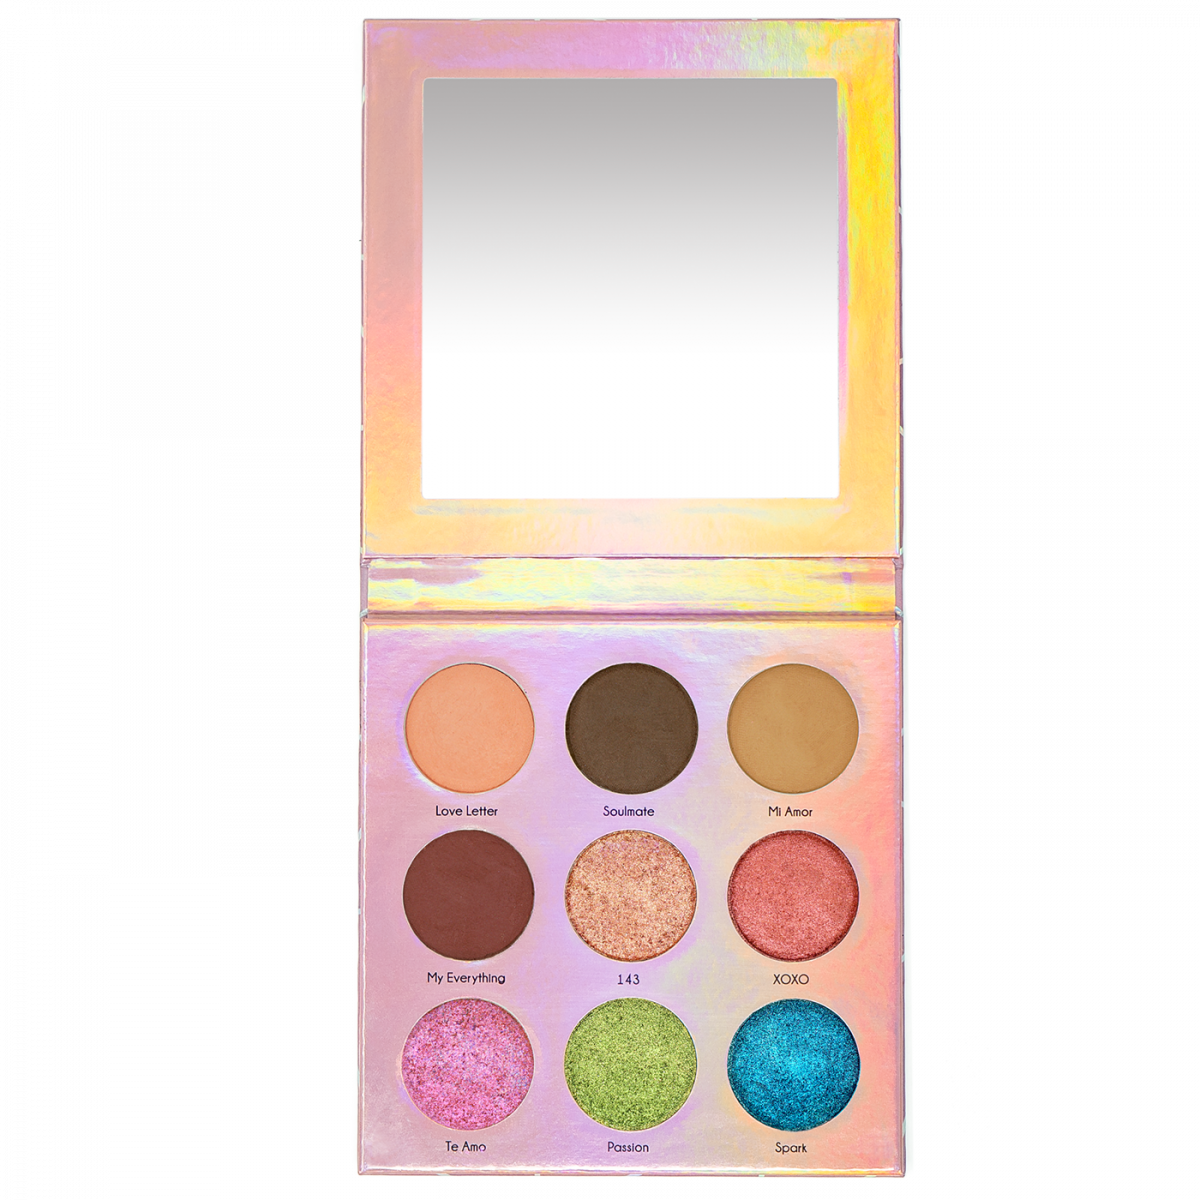 PS I Love You Eyeshadow Palette LiveGlam ShadowMe For Sale